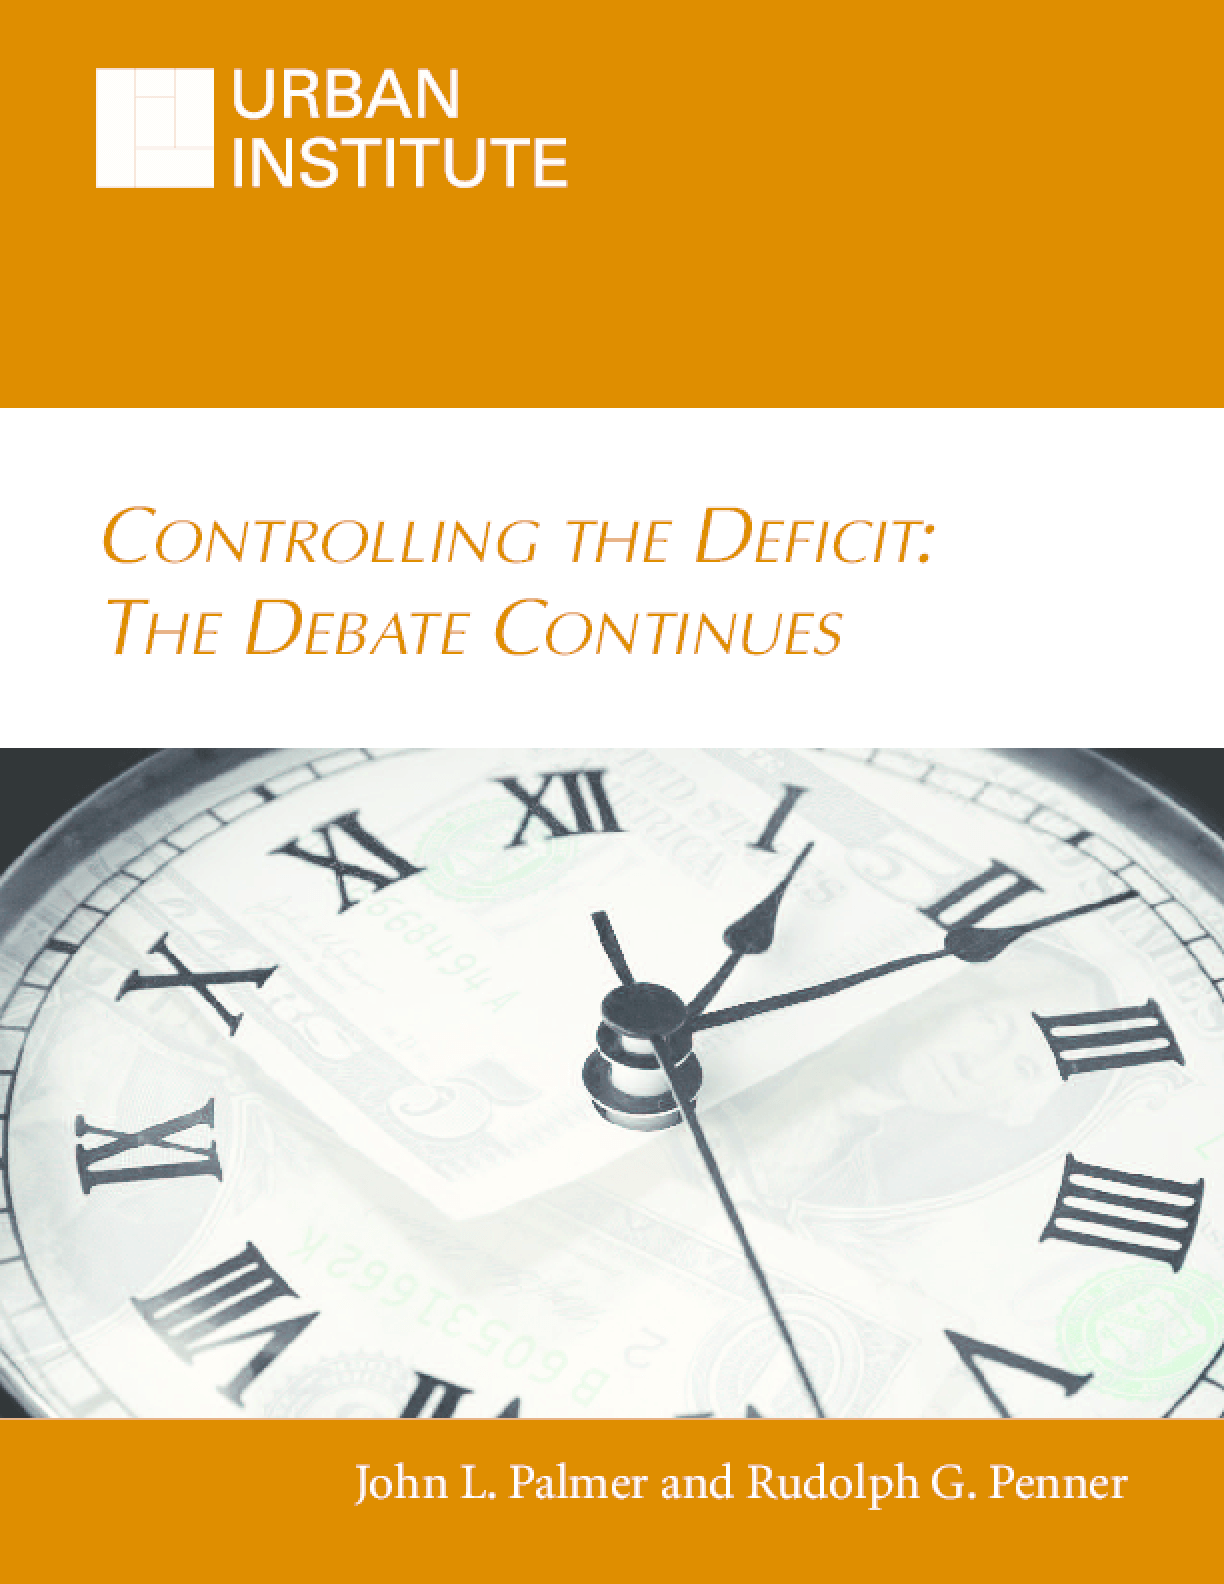 Controlling the Deficit: The Debate Continues